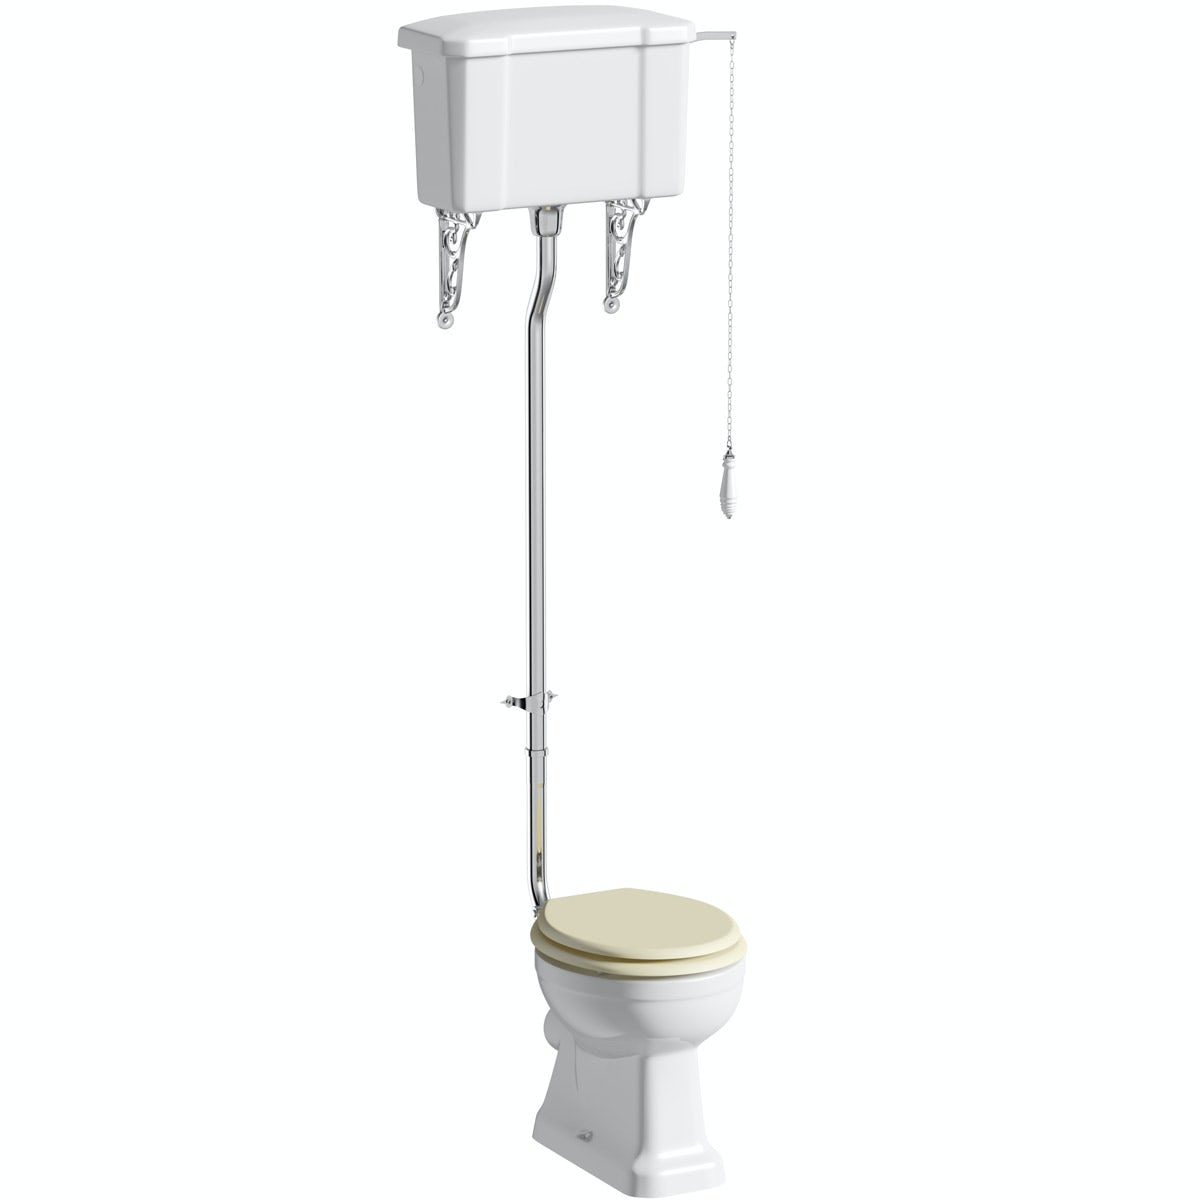 The Bath Co. Camberley high level toilet with wooden soft close seat black